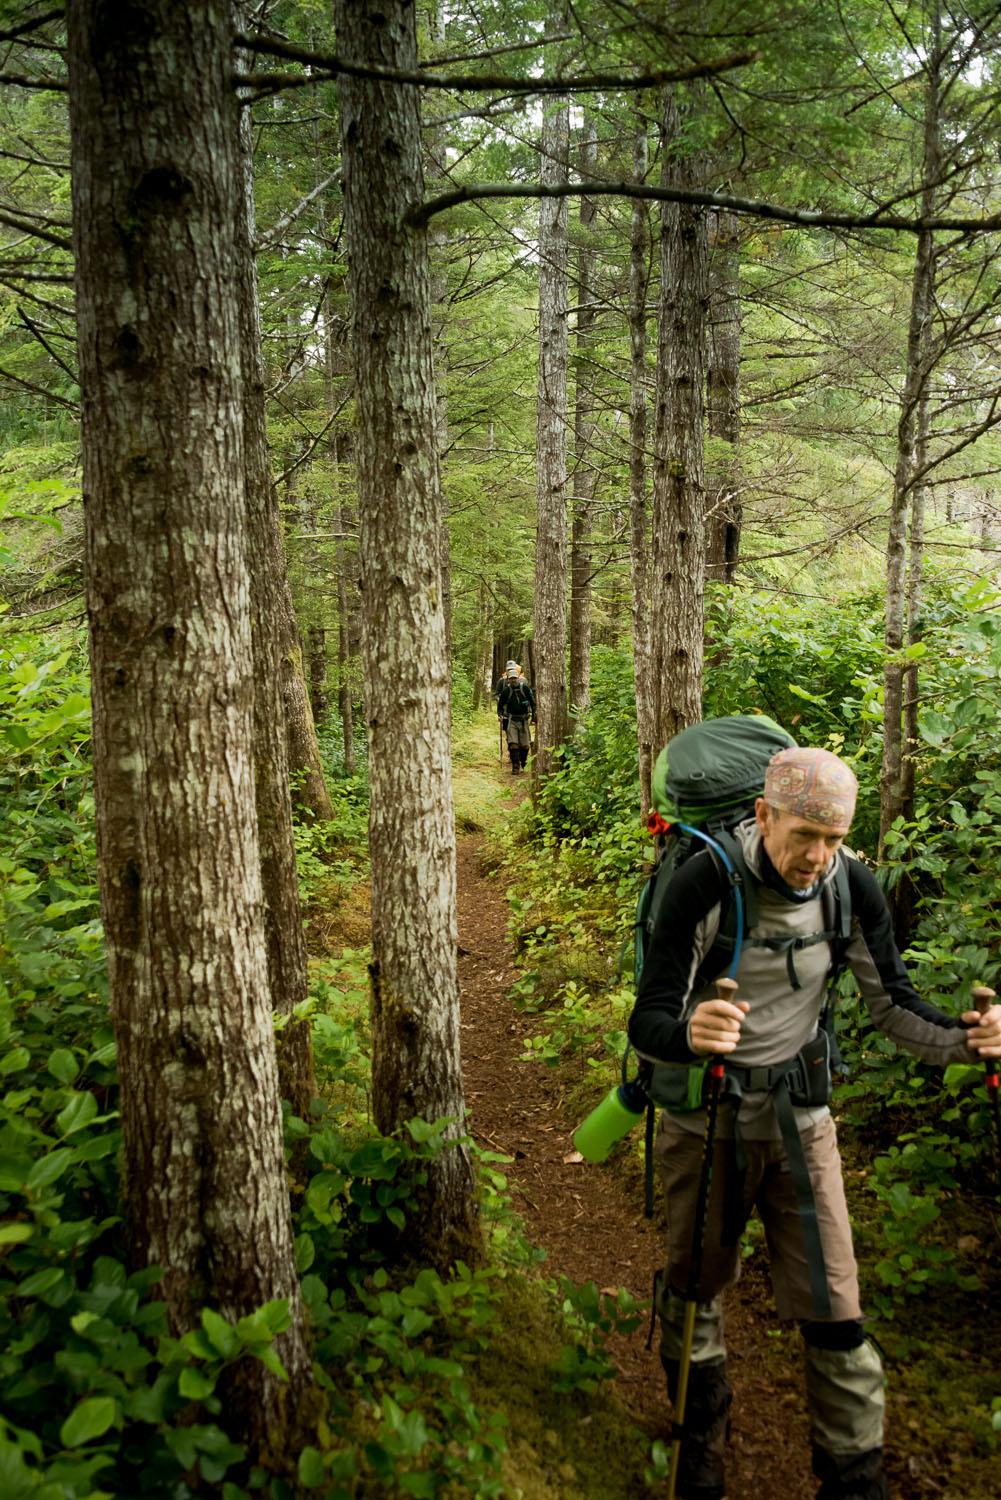 Cape Scott Provincial Par's trails are easy to walk